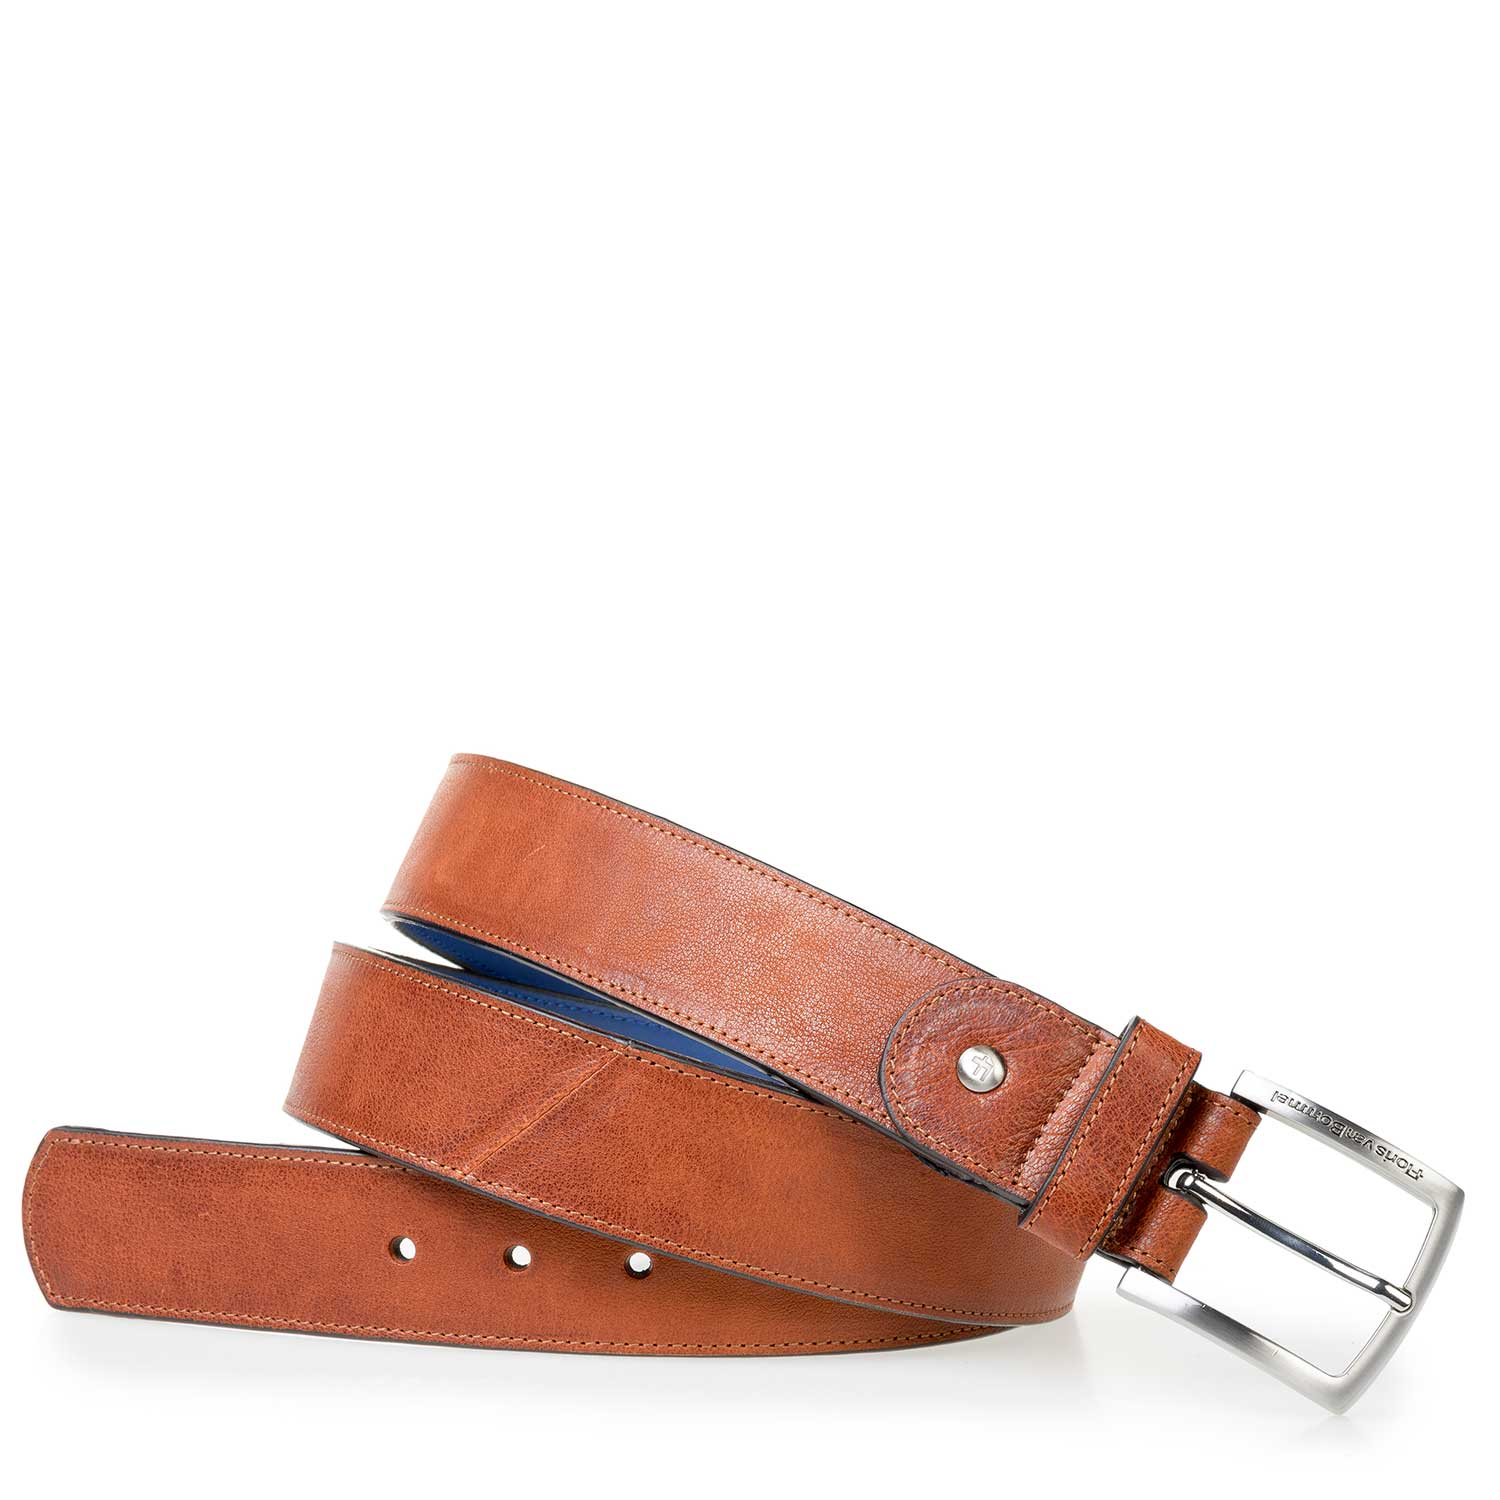 75166/23 - Cognac-coloured leather belt